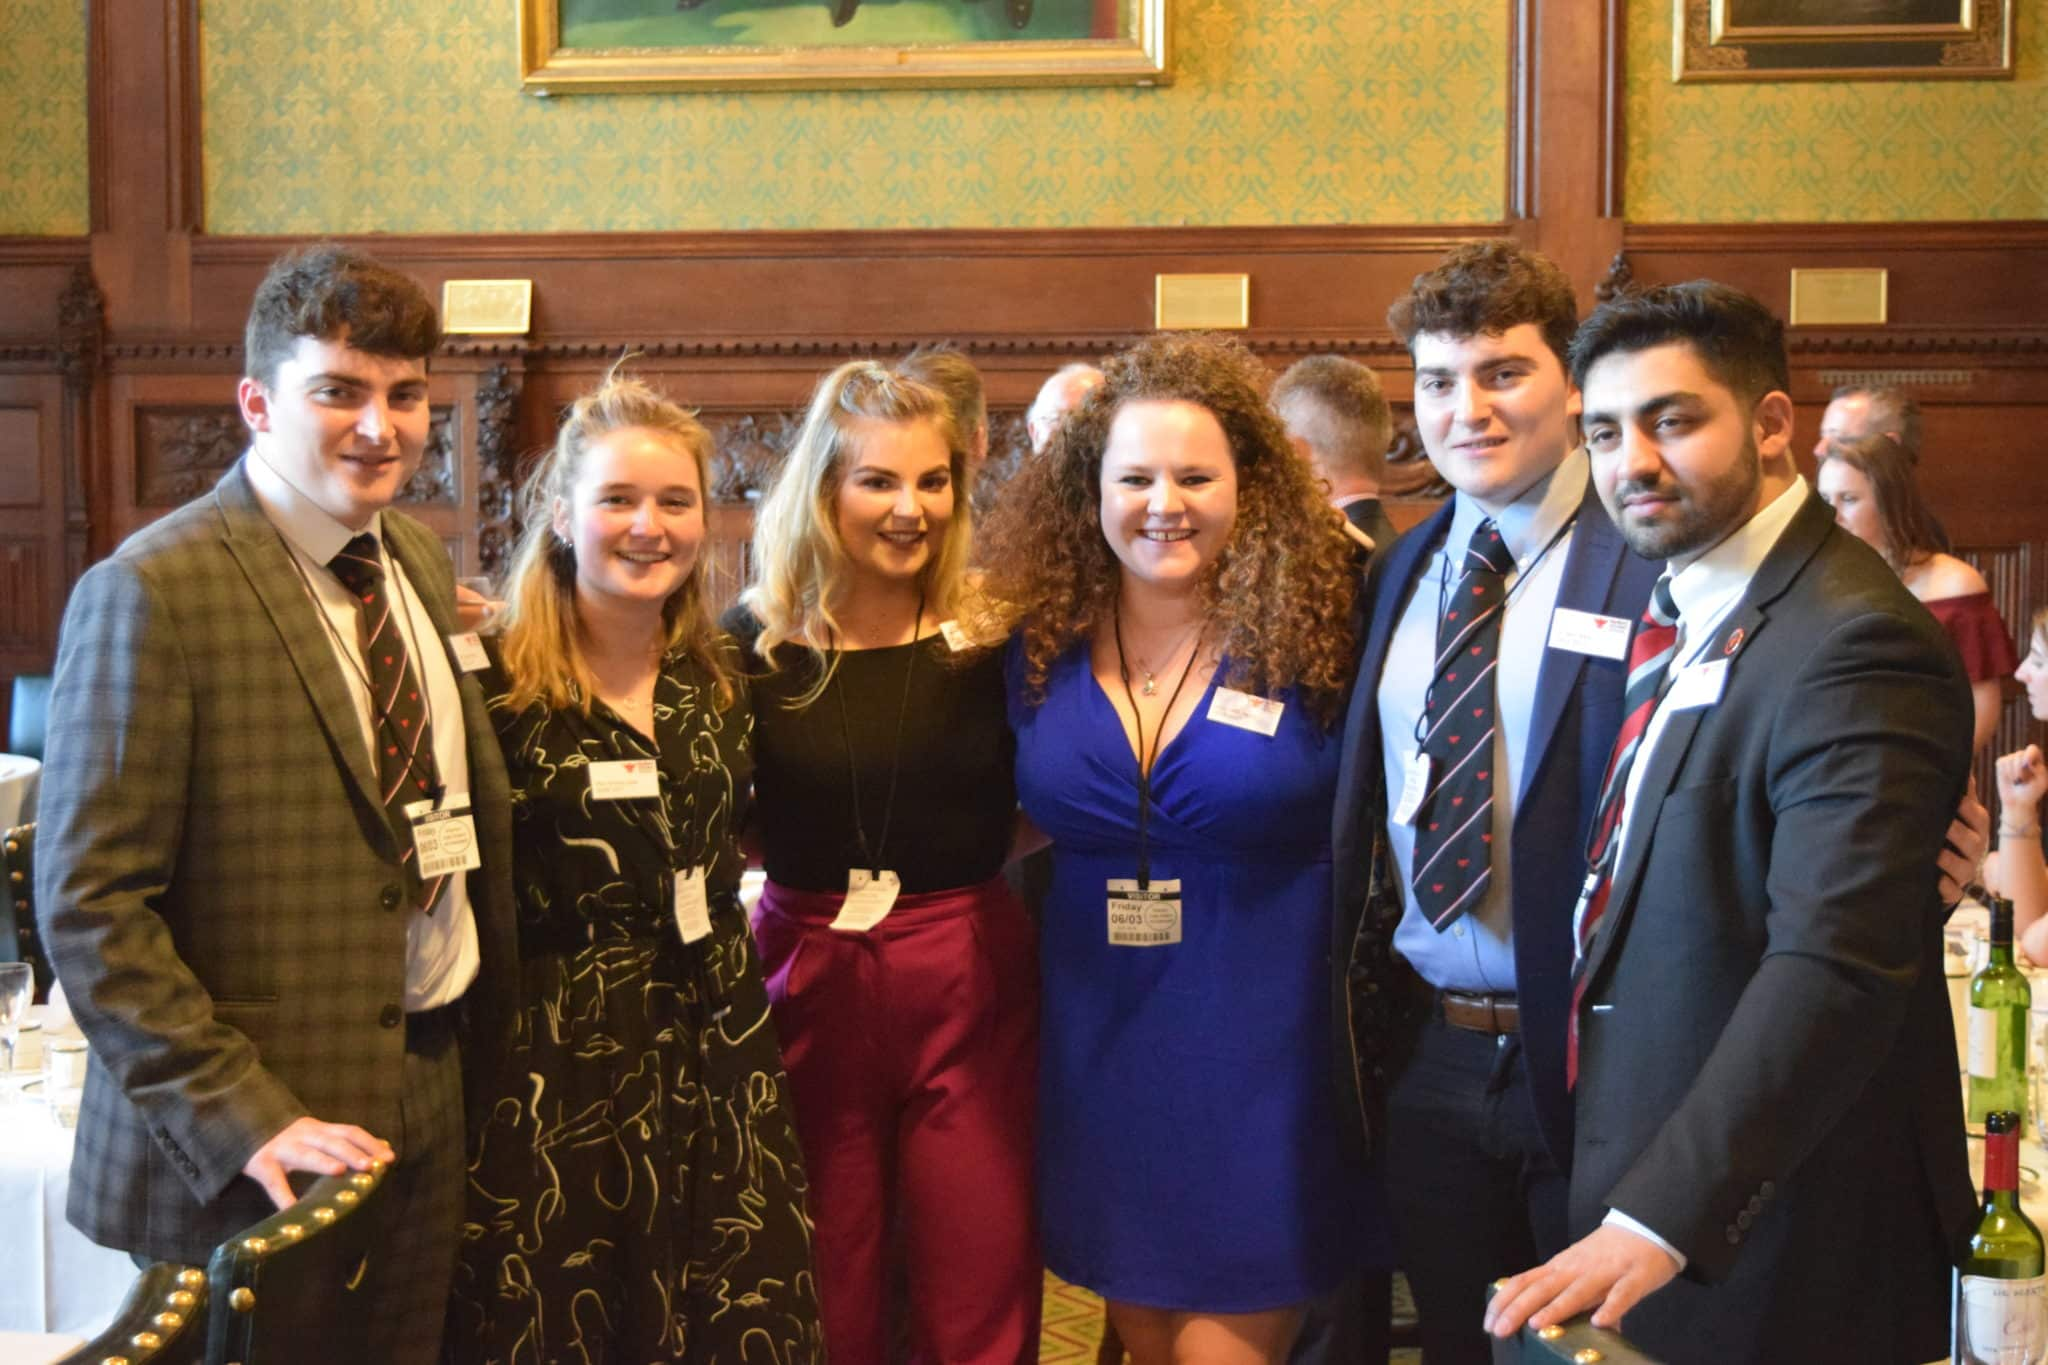 Alice Facey, Emilia Cook, Ross brothers, Caitlin Abbey, Warren d'Souza